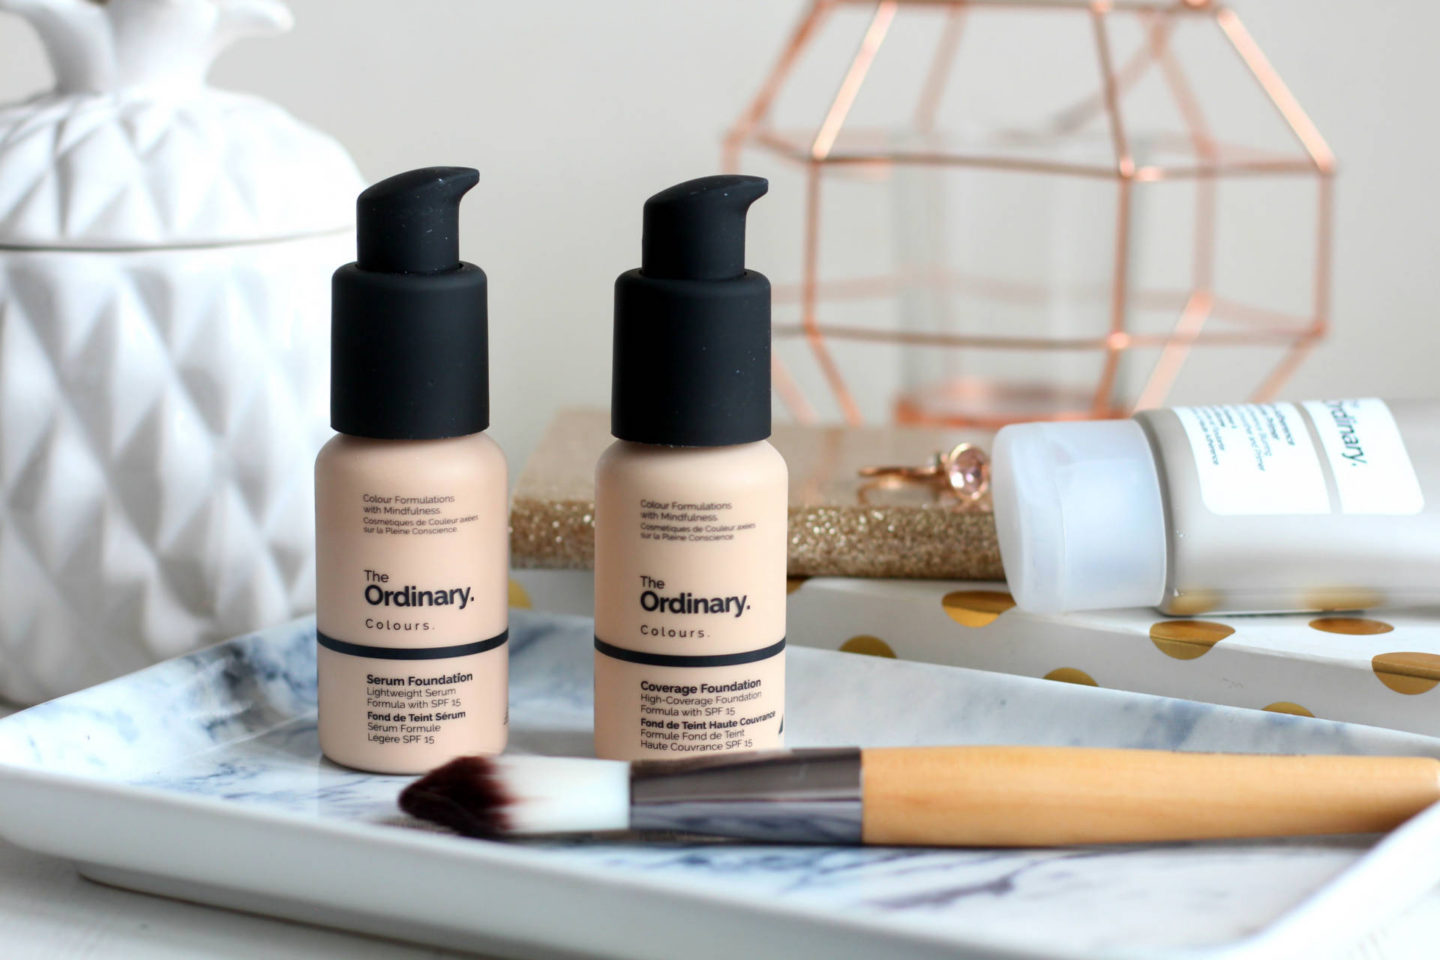 The Ordinary Foundation